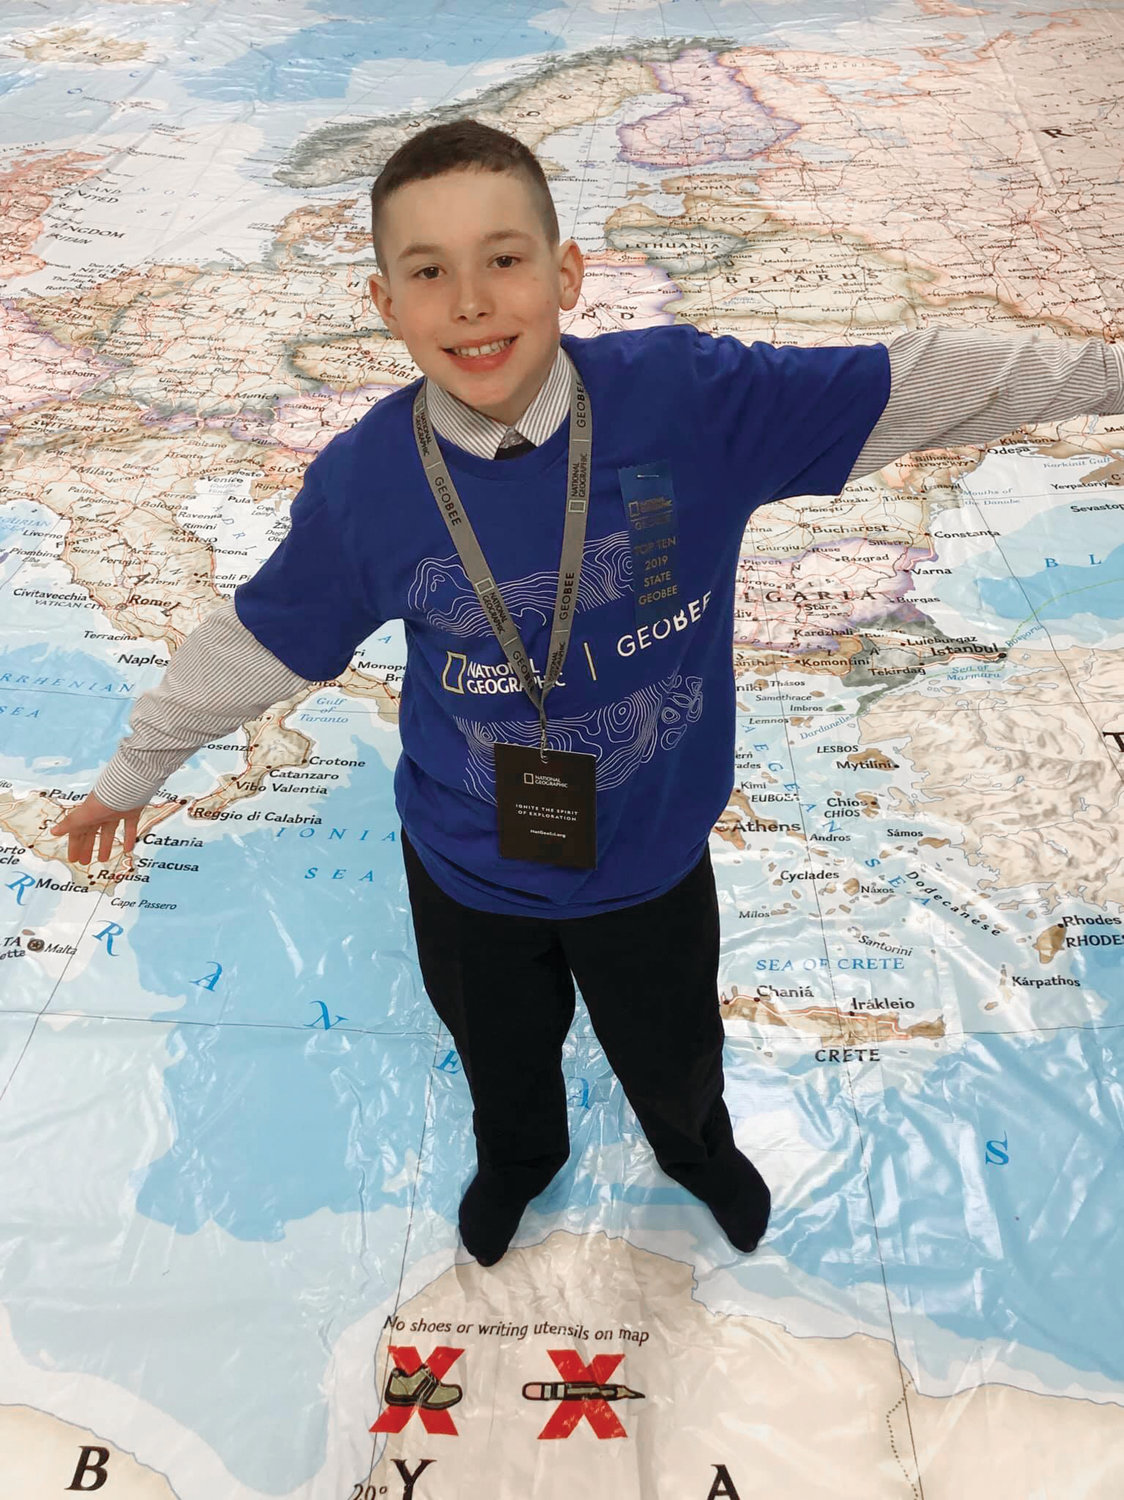 ON TOP OF THE WORLD: Aidan Paplaskaus, a fifth-grader from St. Mary's School, was the only Cranston student to make it to the top 10 at the state GeoBee competition on March 29.